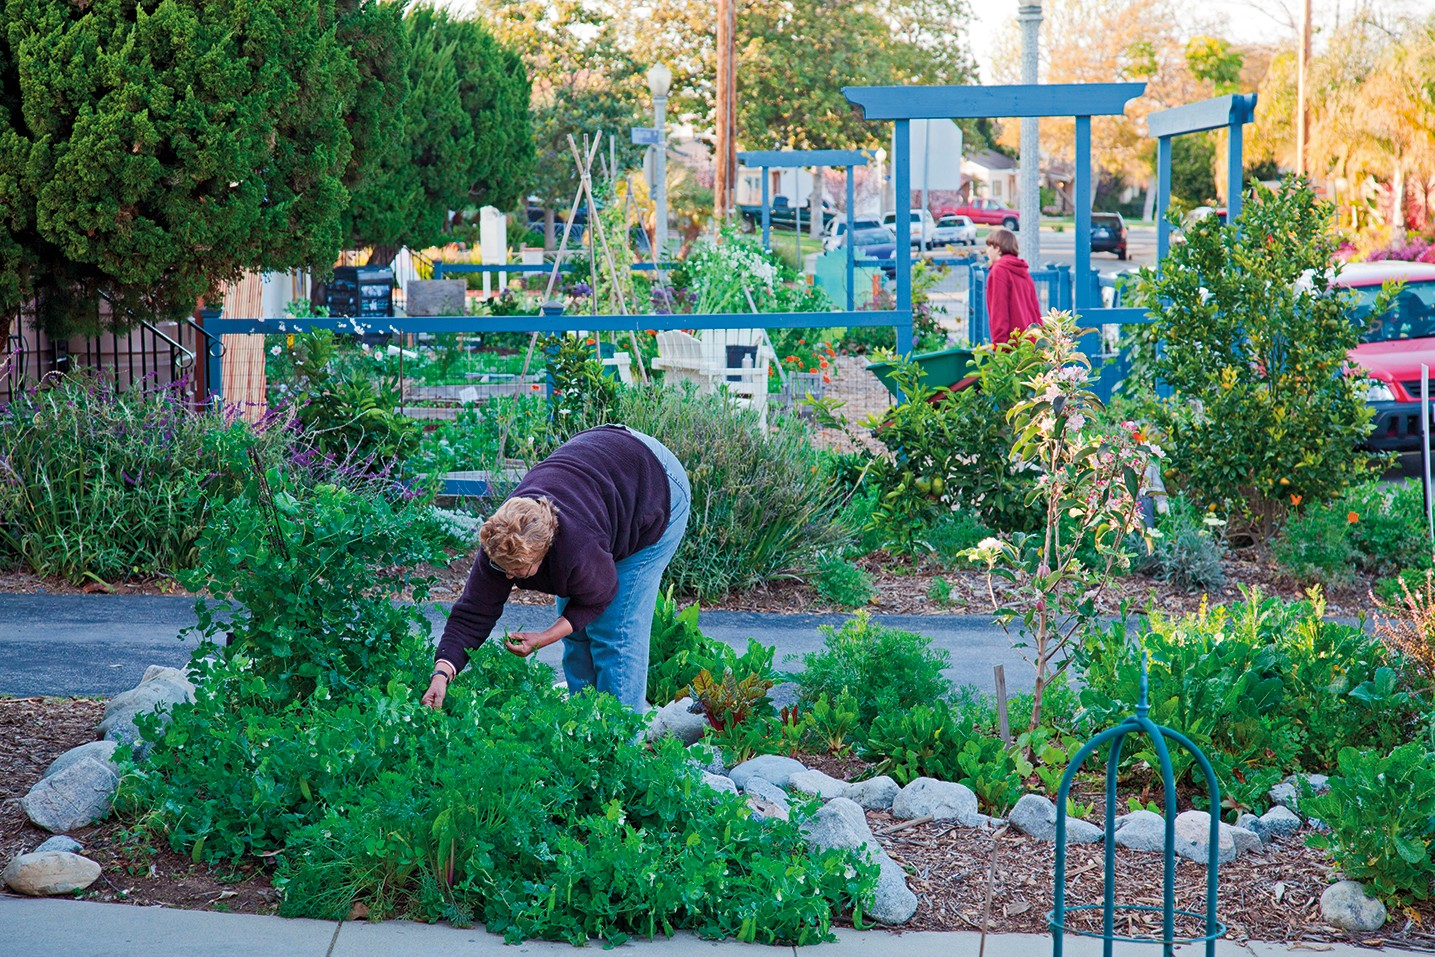 Urban Agriculture Growth In Us Cities Nature Sustainability